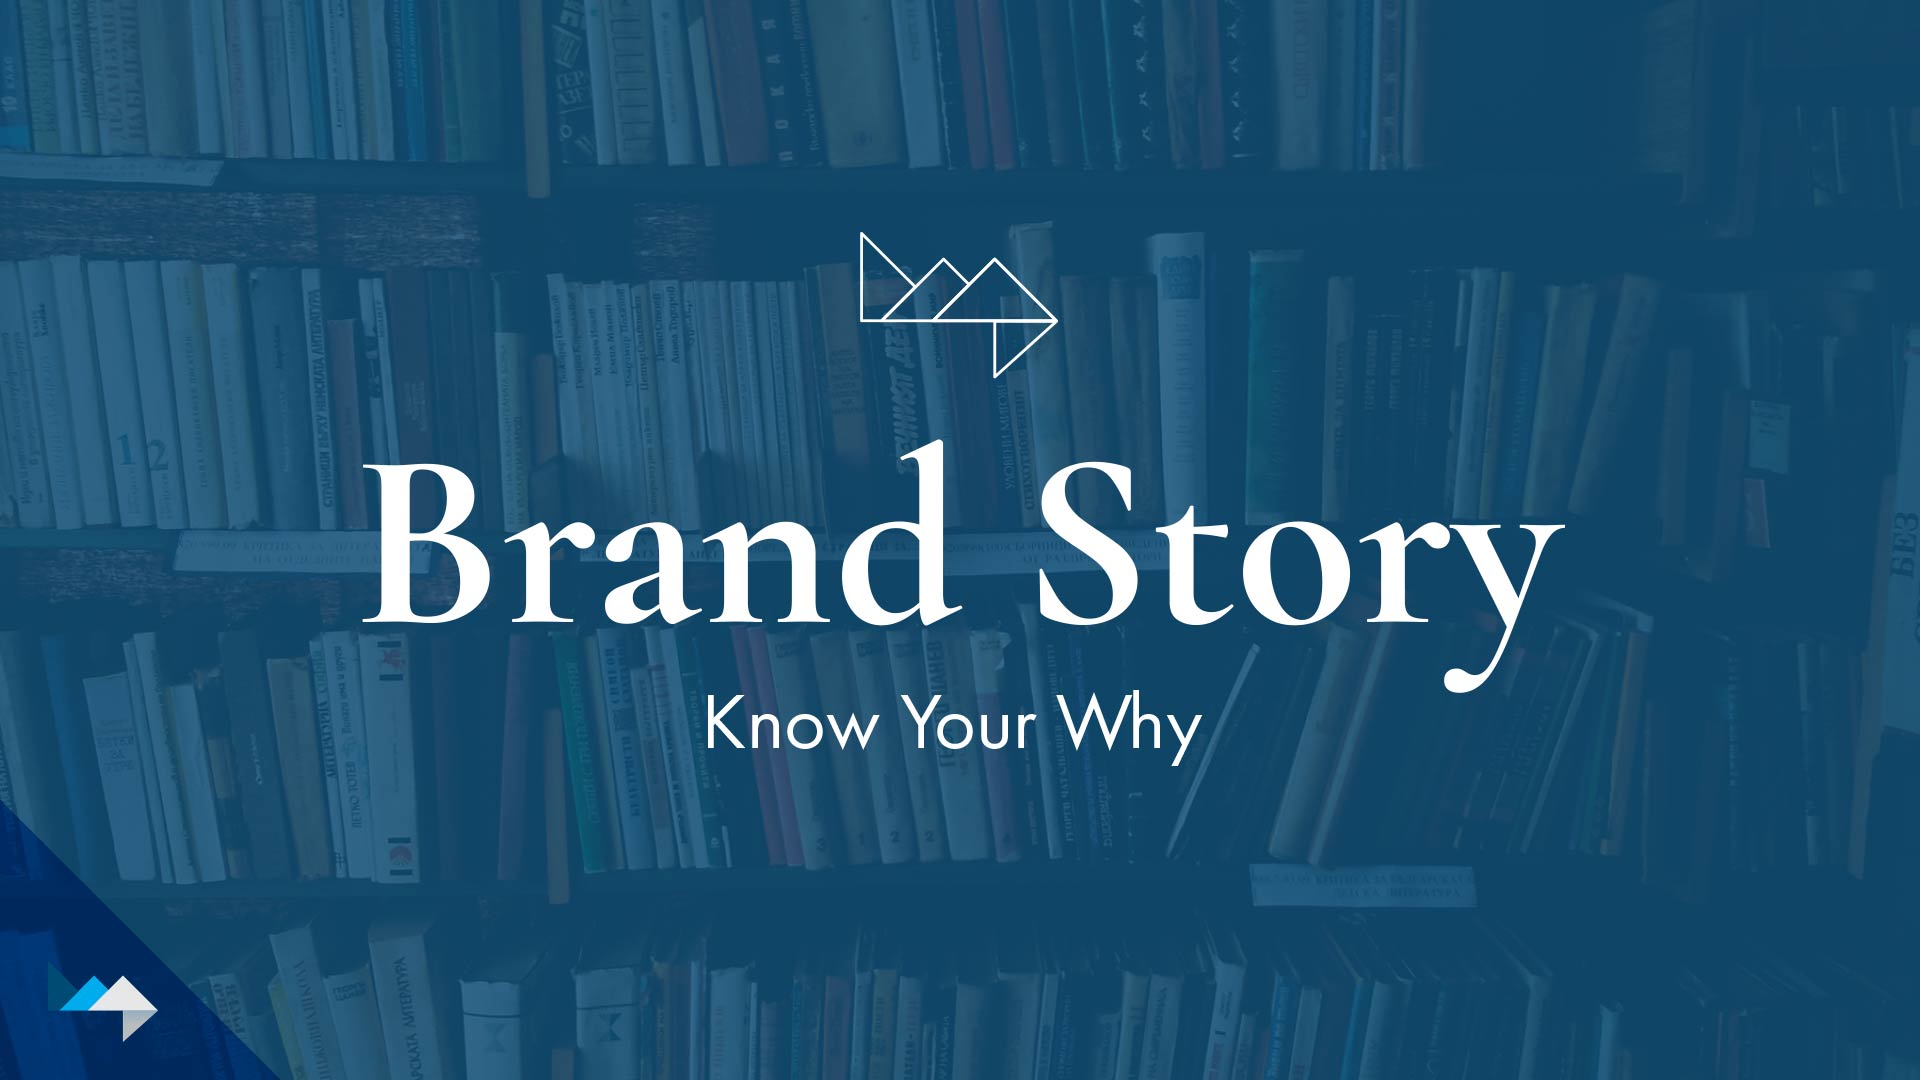 Brand Story Infographic